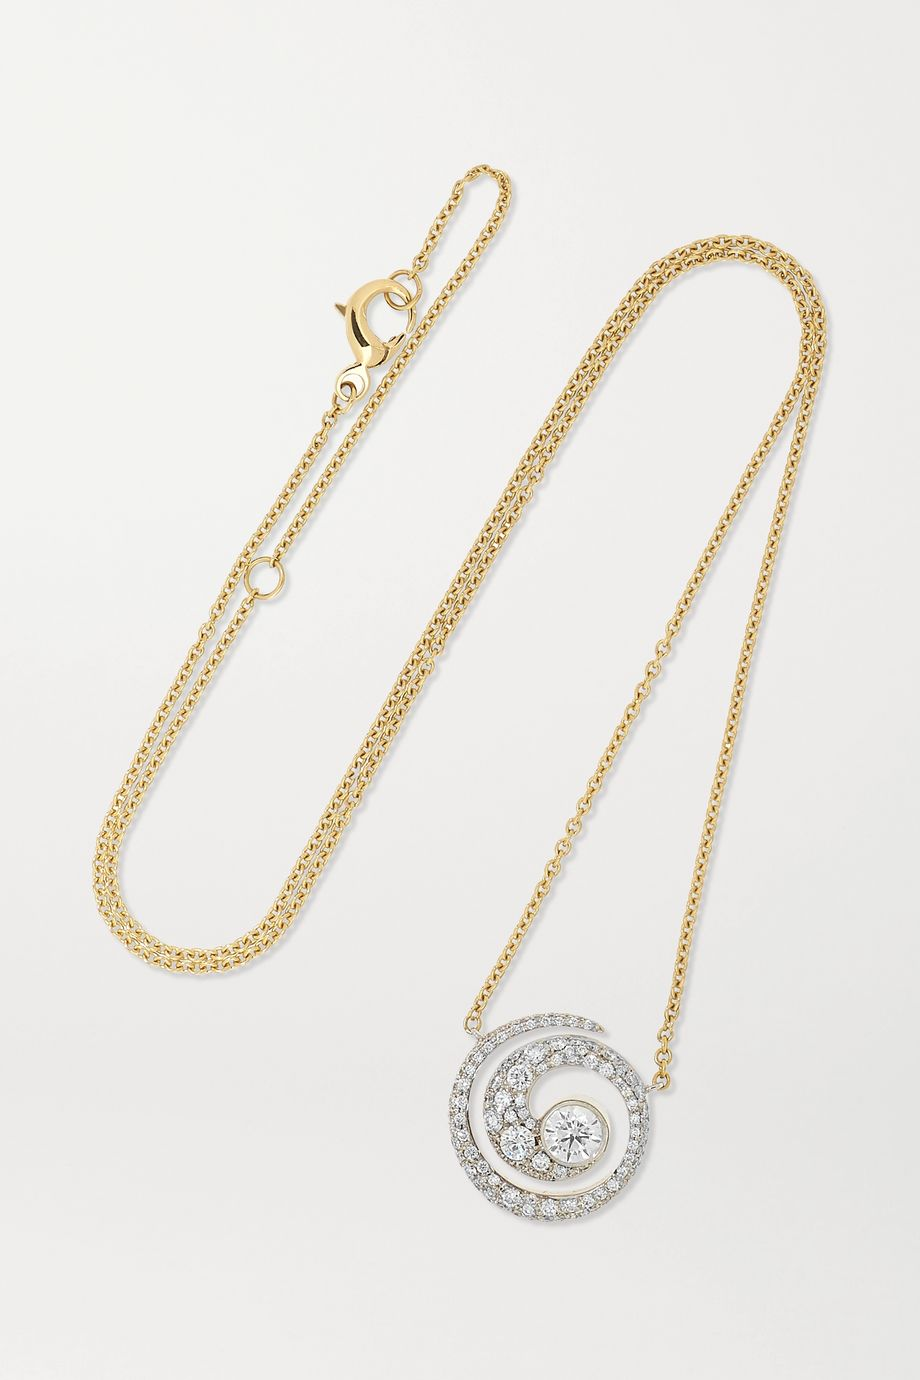 Jessica McCormack Tattoo 18-karat white and yellow gold diamond necklace